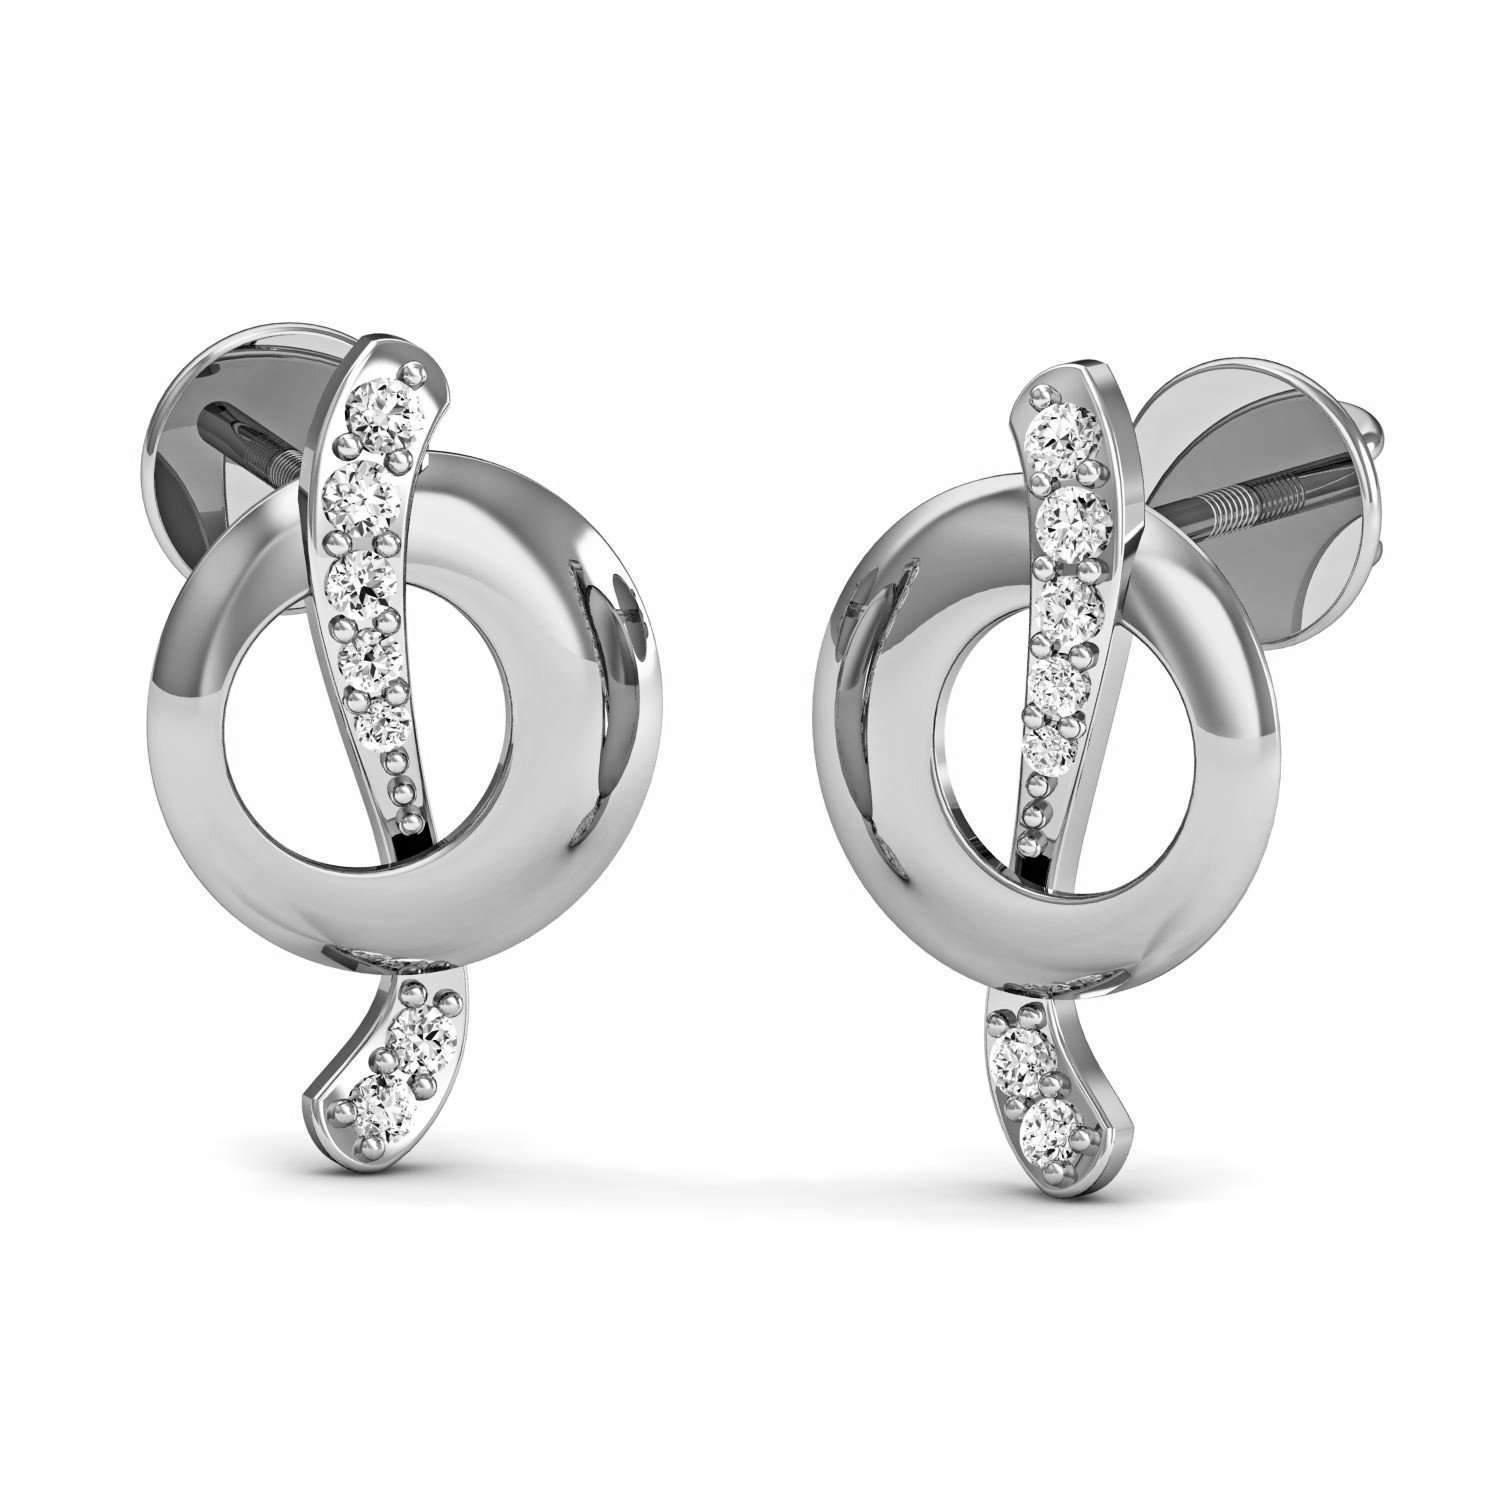 Diamoire Jewels Pave-Prong Diamond and 14kt White Gold Earrings Inspired by Nature Zm8nW7b8